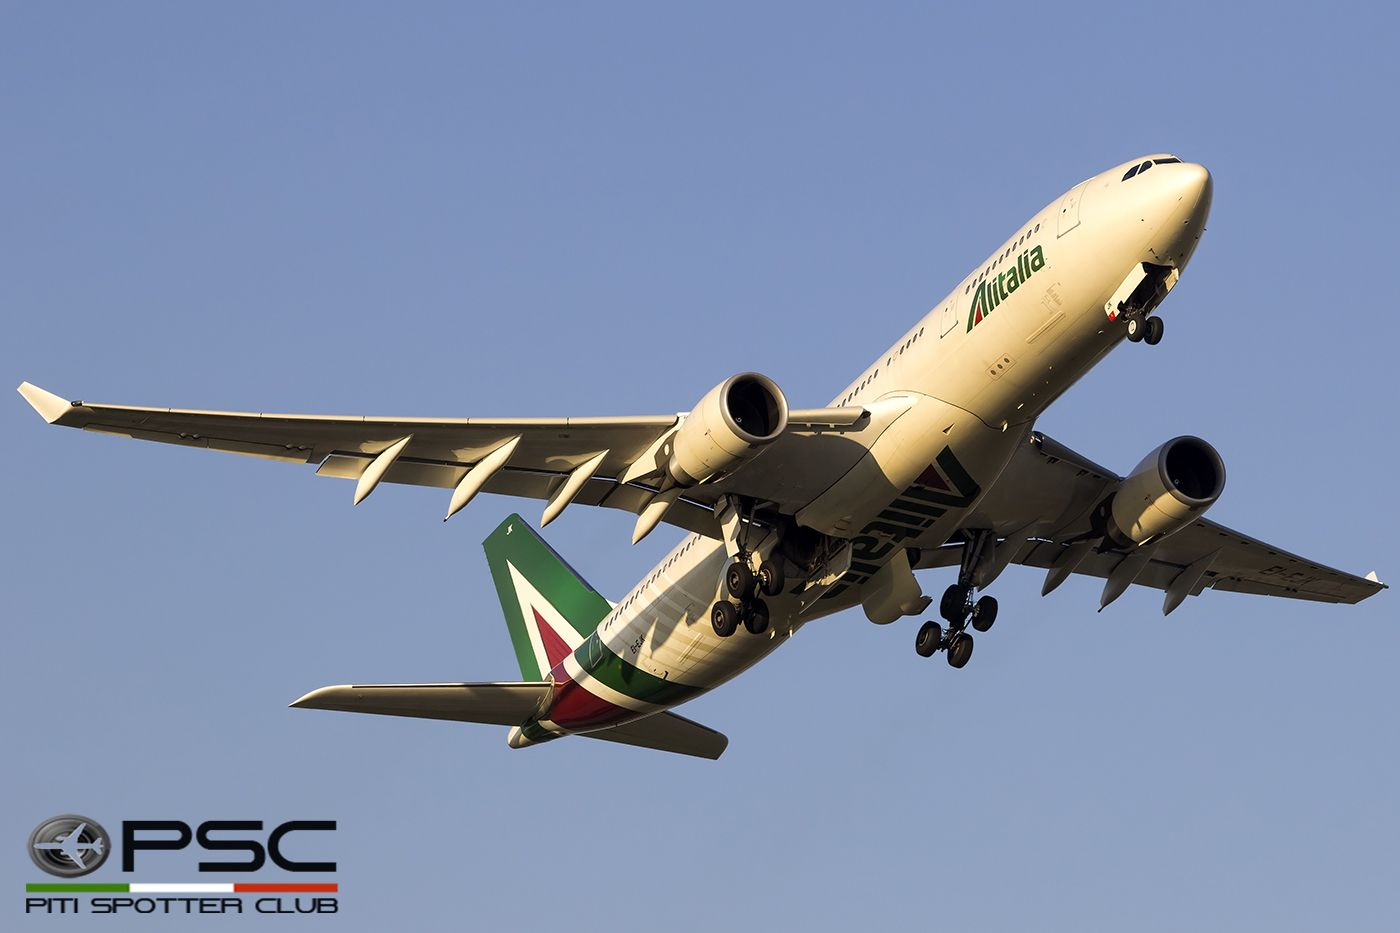 Take off from Roma Fiumicino